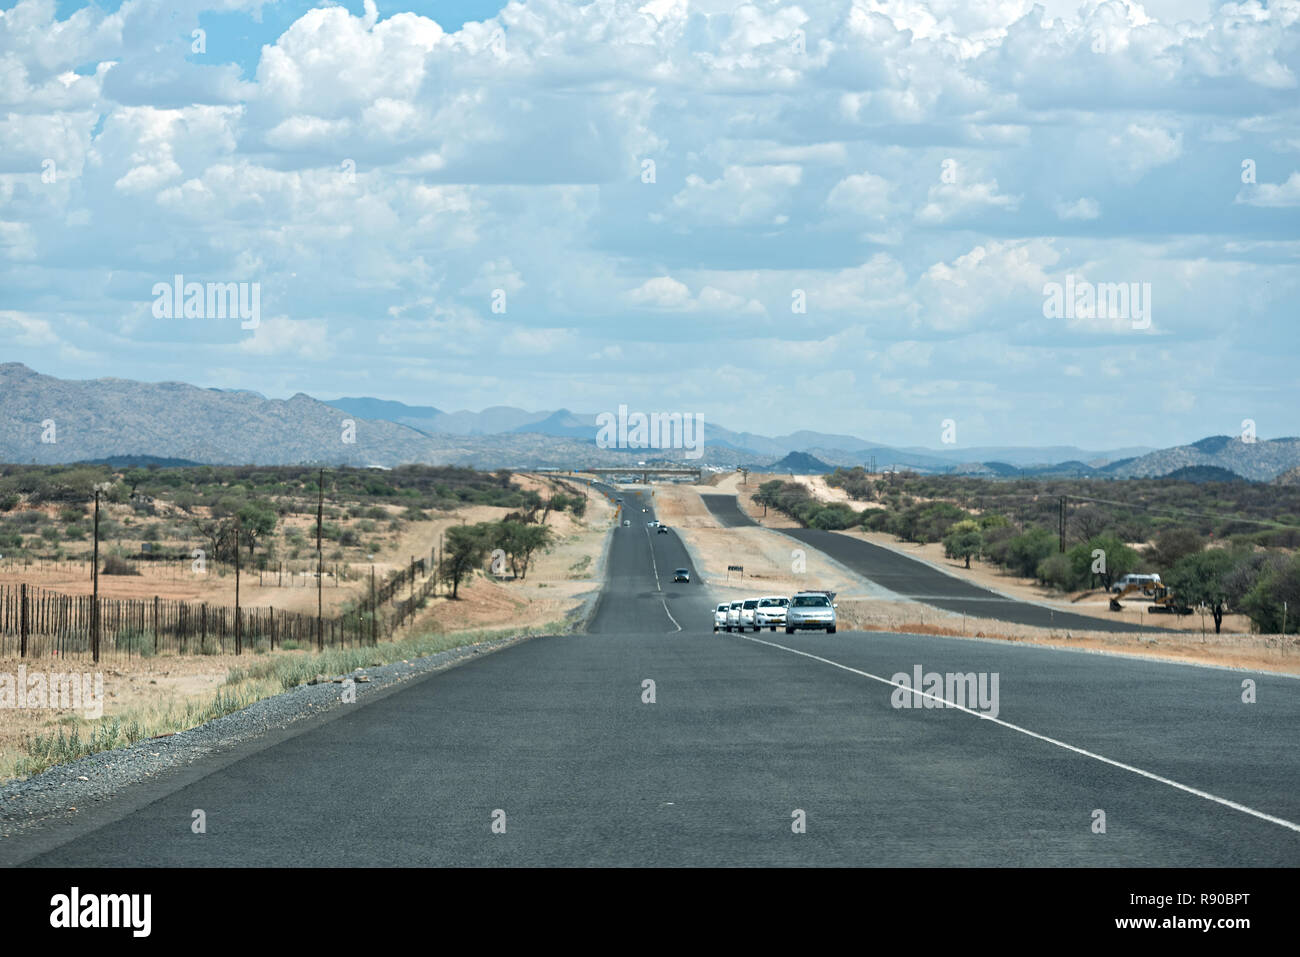 the new motorway a1 (b1) in the north of windhoek, namibia - Stock Image